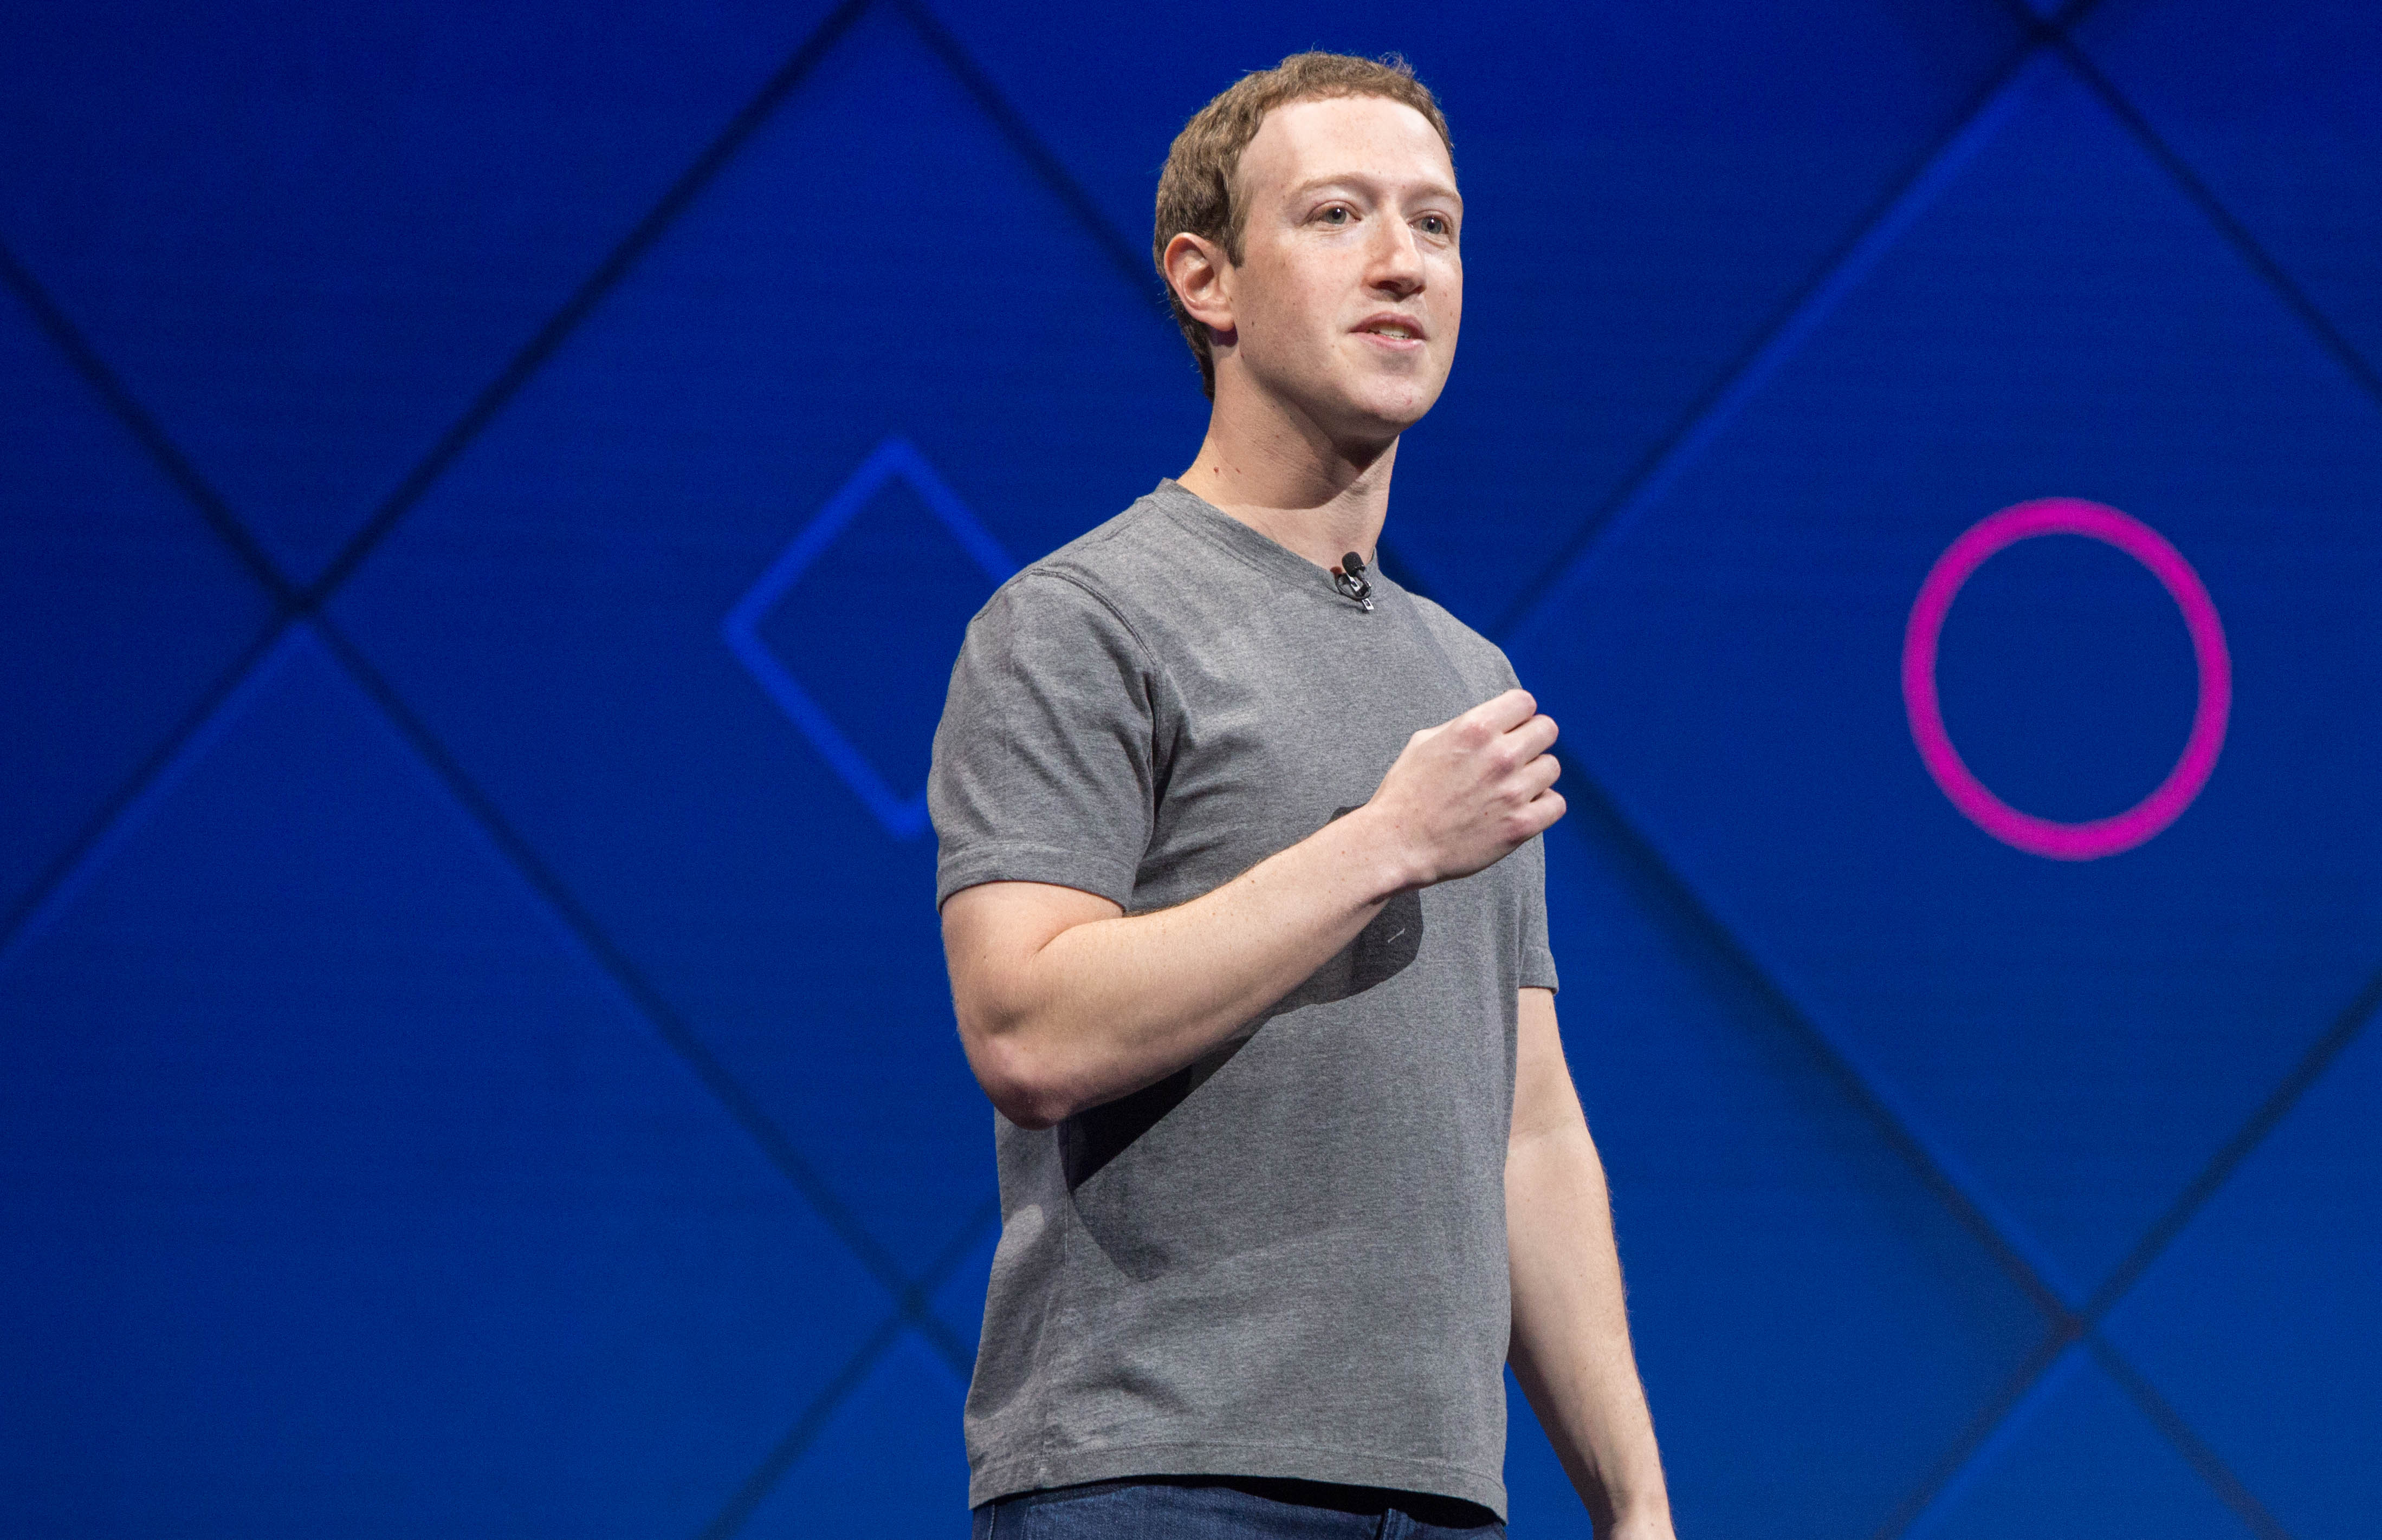 New EU privacy rules to benefit Facebook users globally